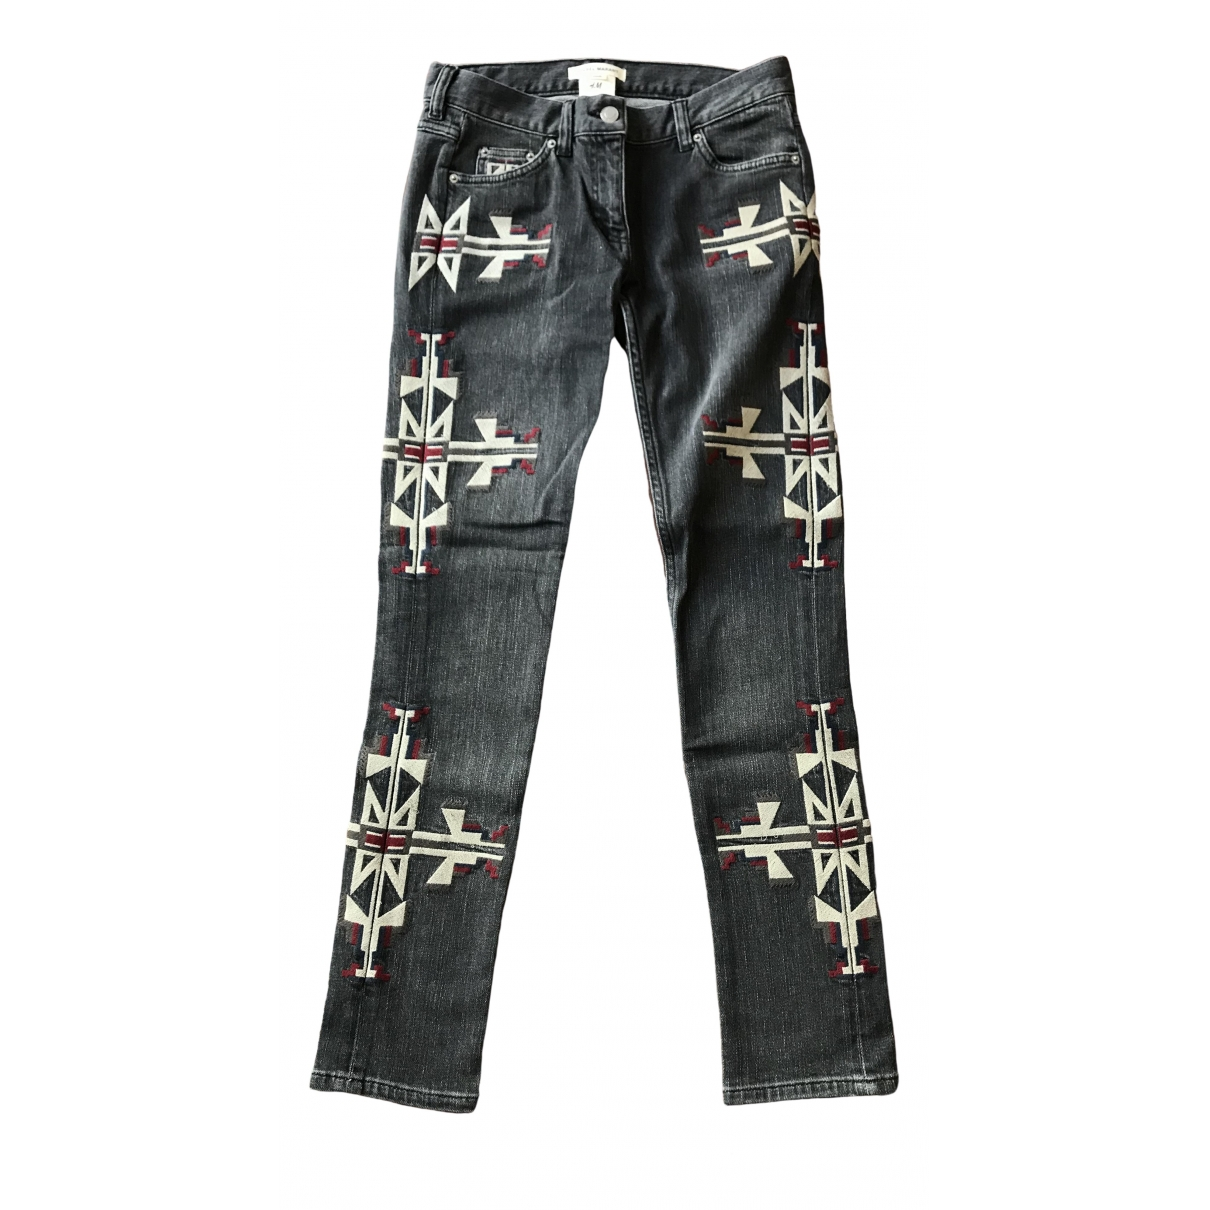 Isabel Marant Pour H&m \N Denim - Jeans Trousers for Women XS International